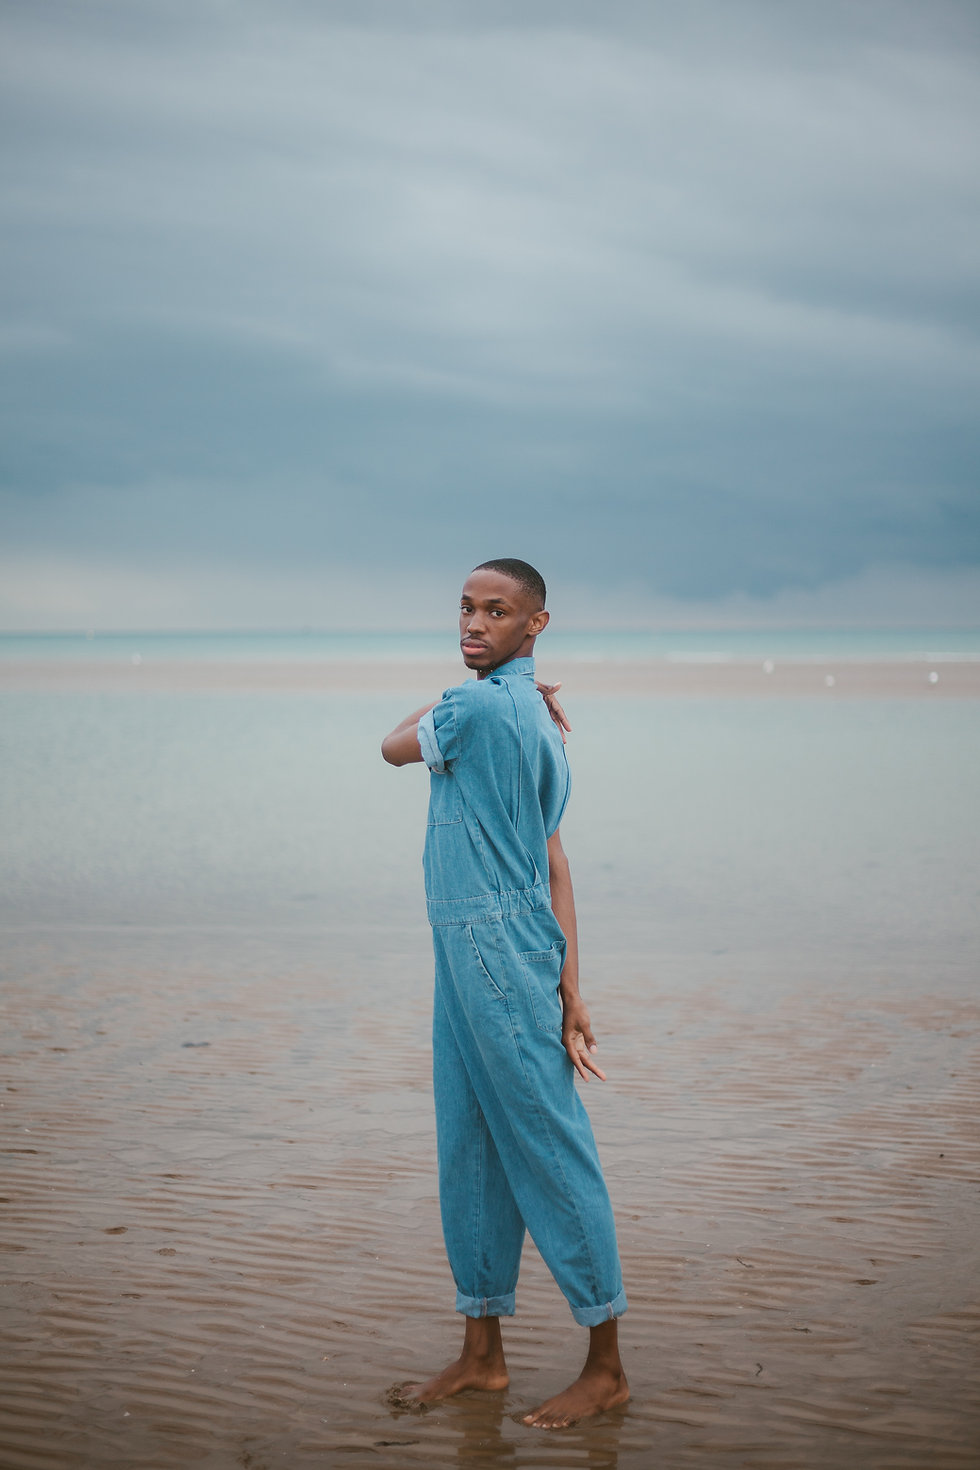 A young man is standing on the seashore in a denim jumpsuit